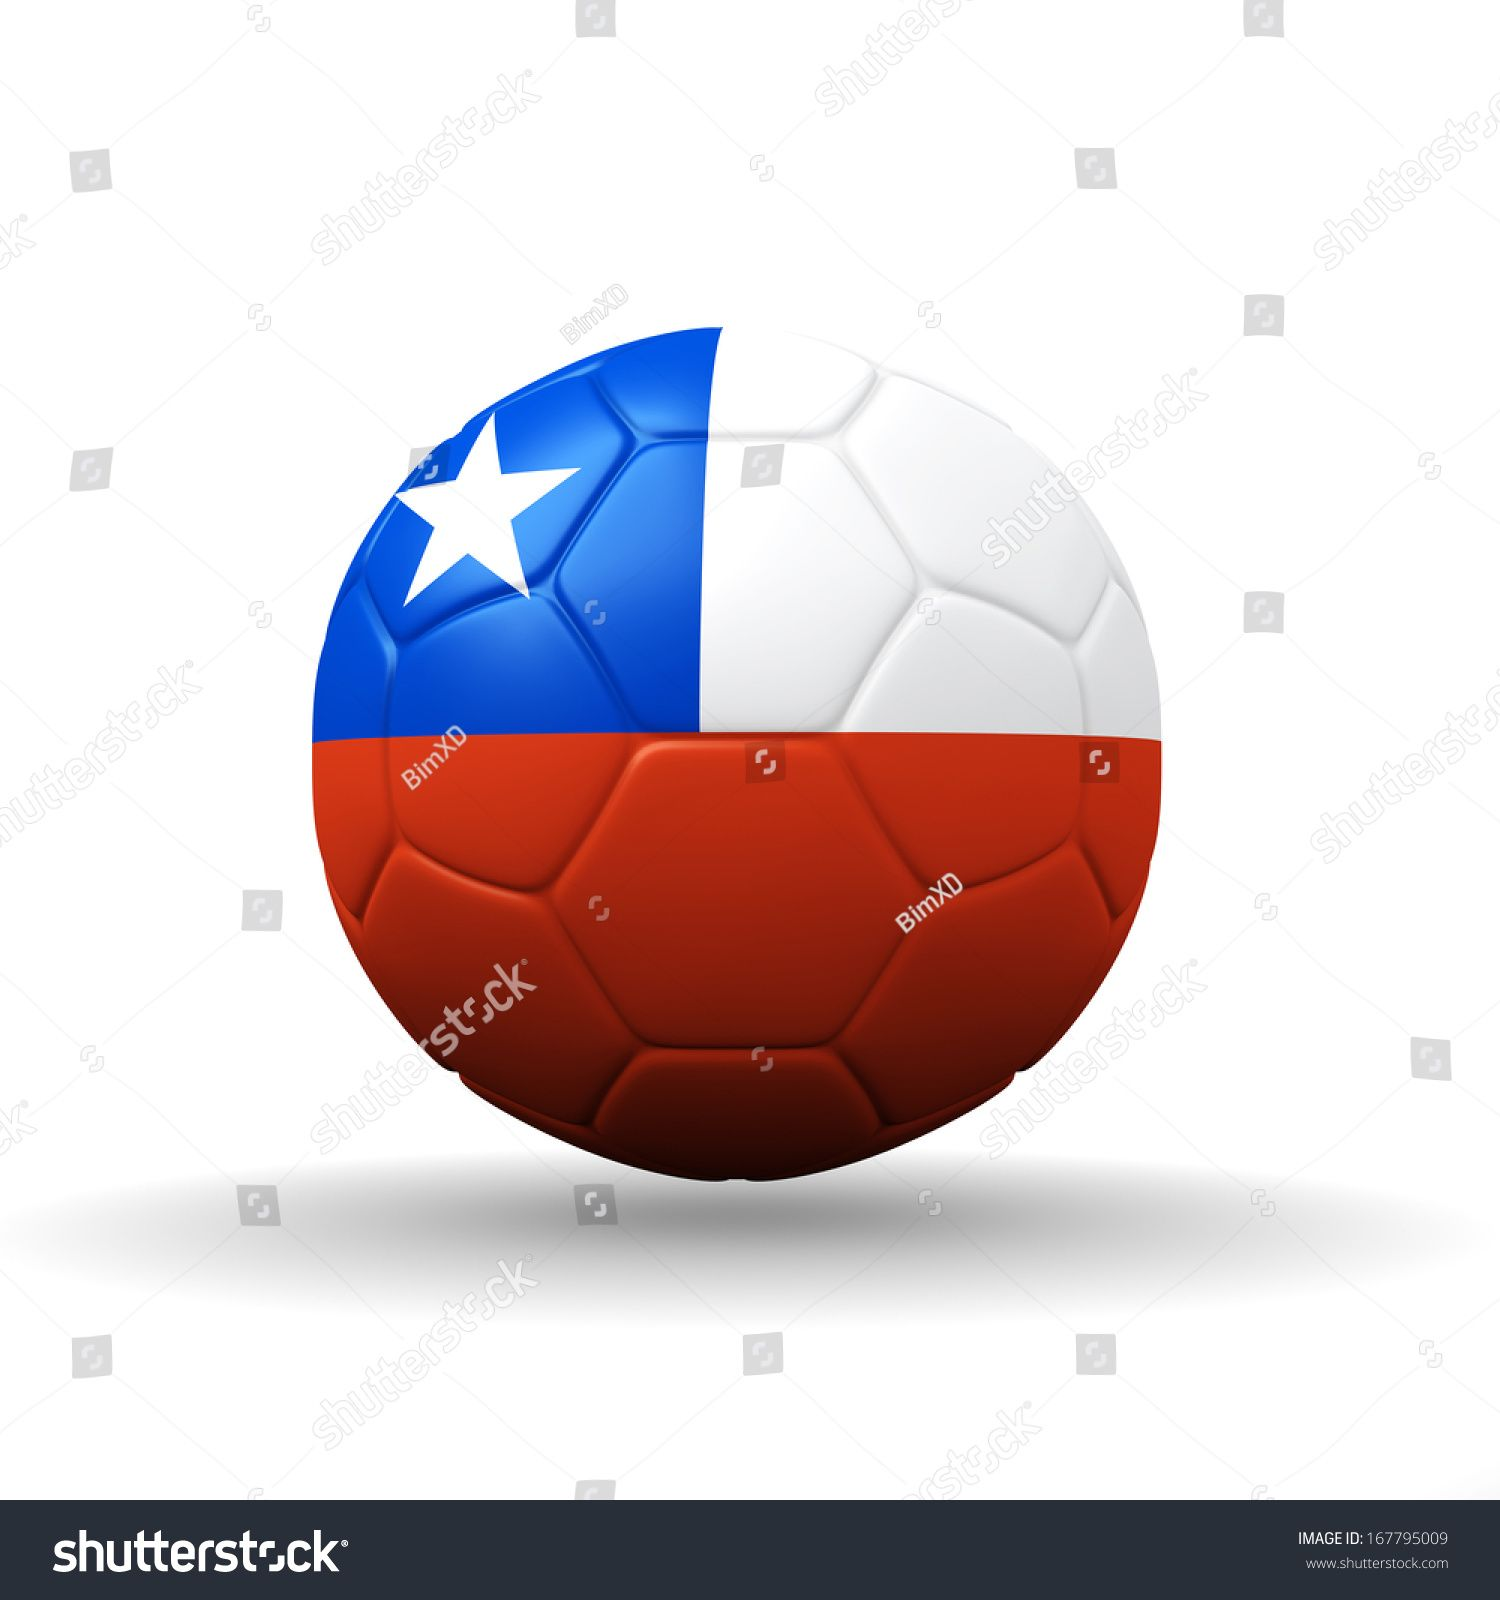 Download Republic Of Chile Flag Textured On Soccer Ball Clipping Path Included Ad Ad Flag Textured Republic Chile Ball Basketball Ball Soccer Ball